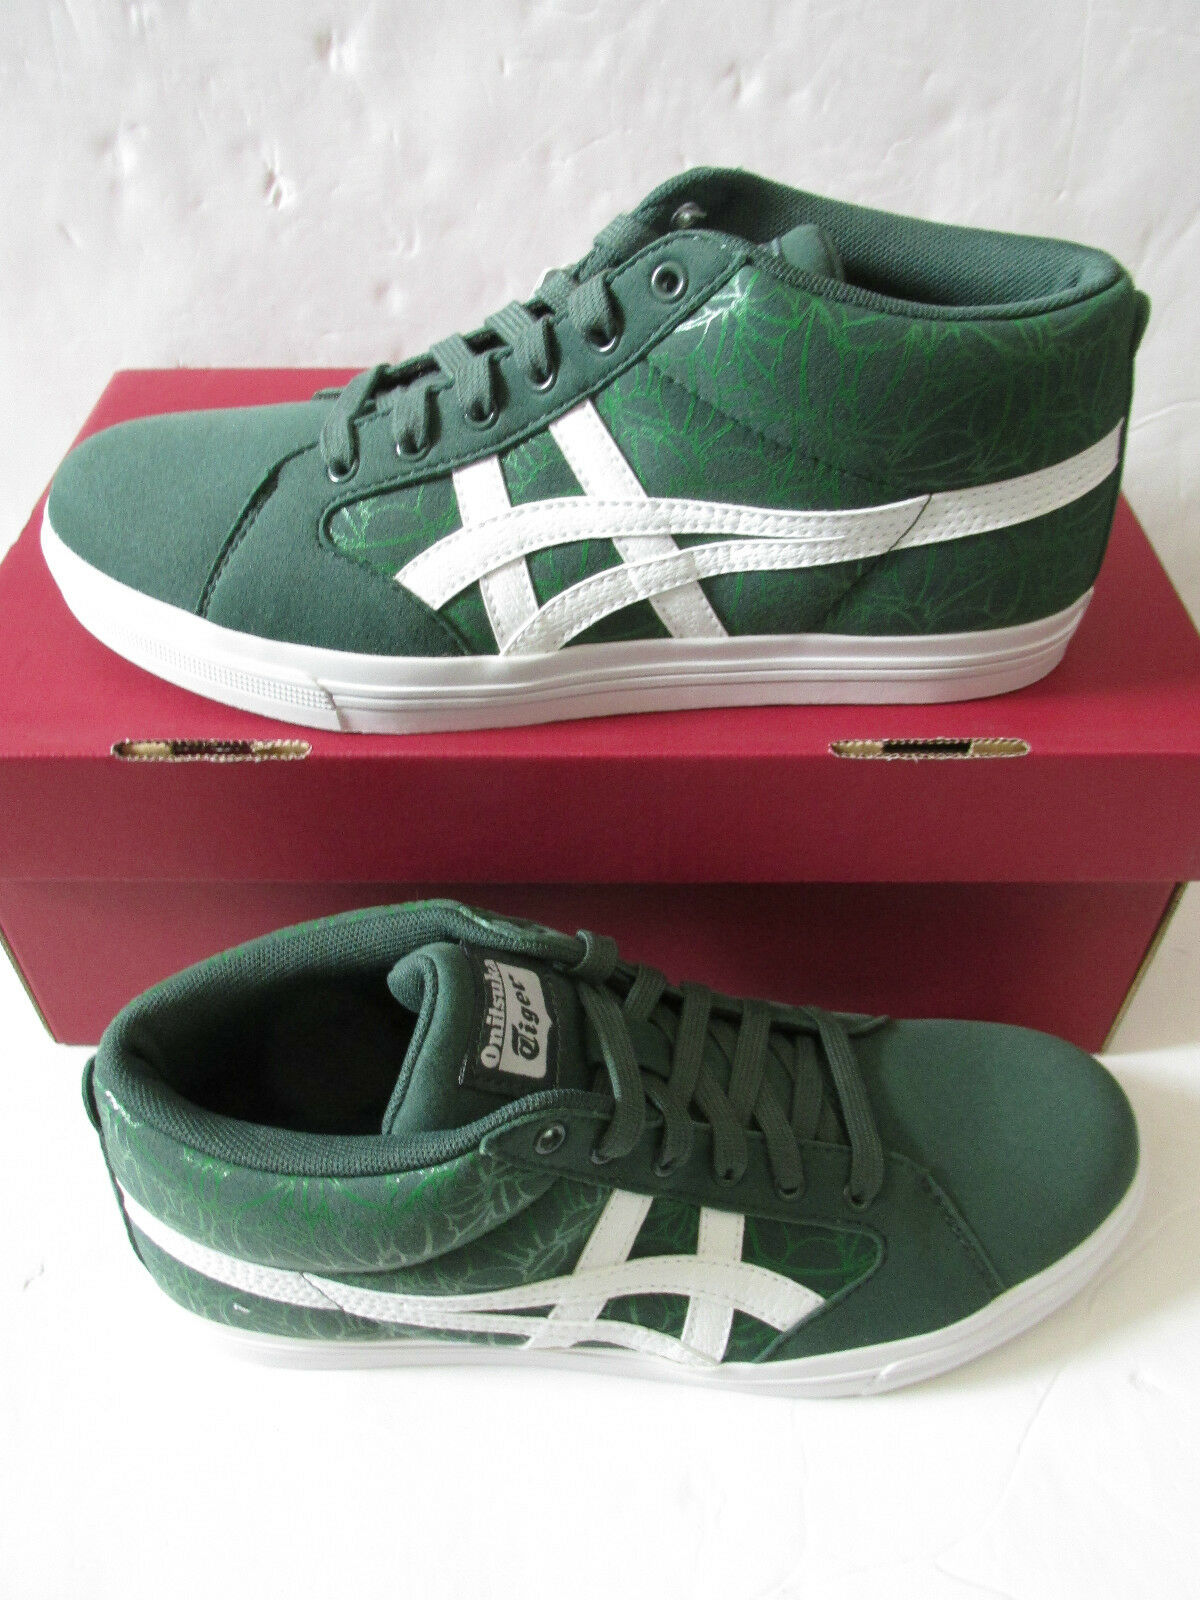 Onitsuka Tiger Farside Gs Baskets C4C4Y 8401 Baskets Asics Seasonal clearance sale